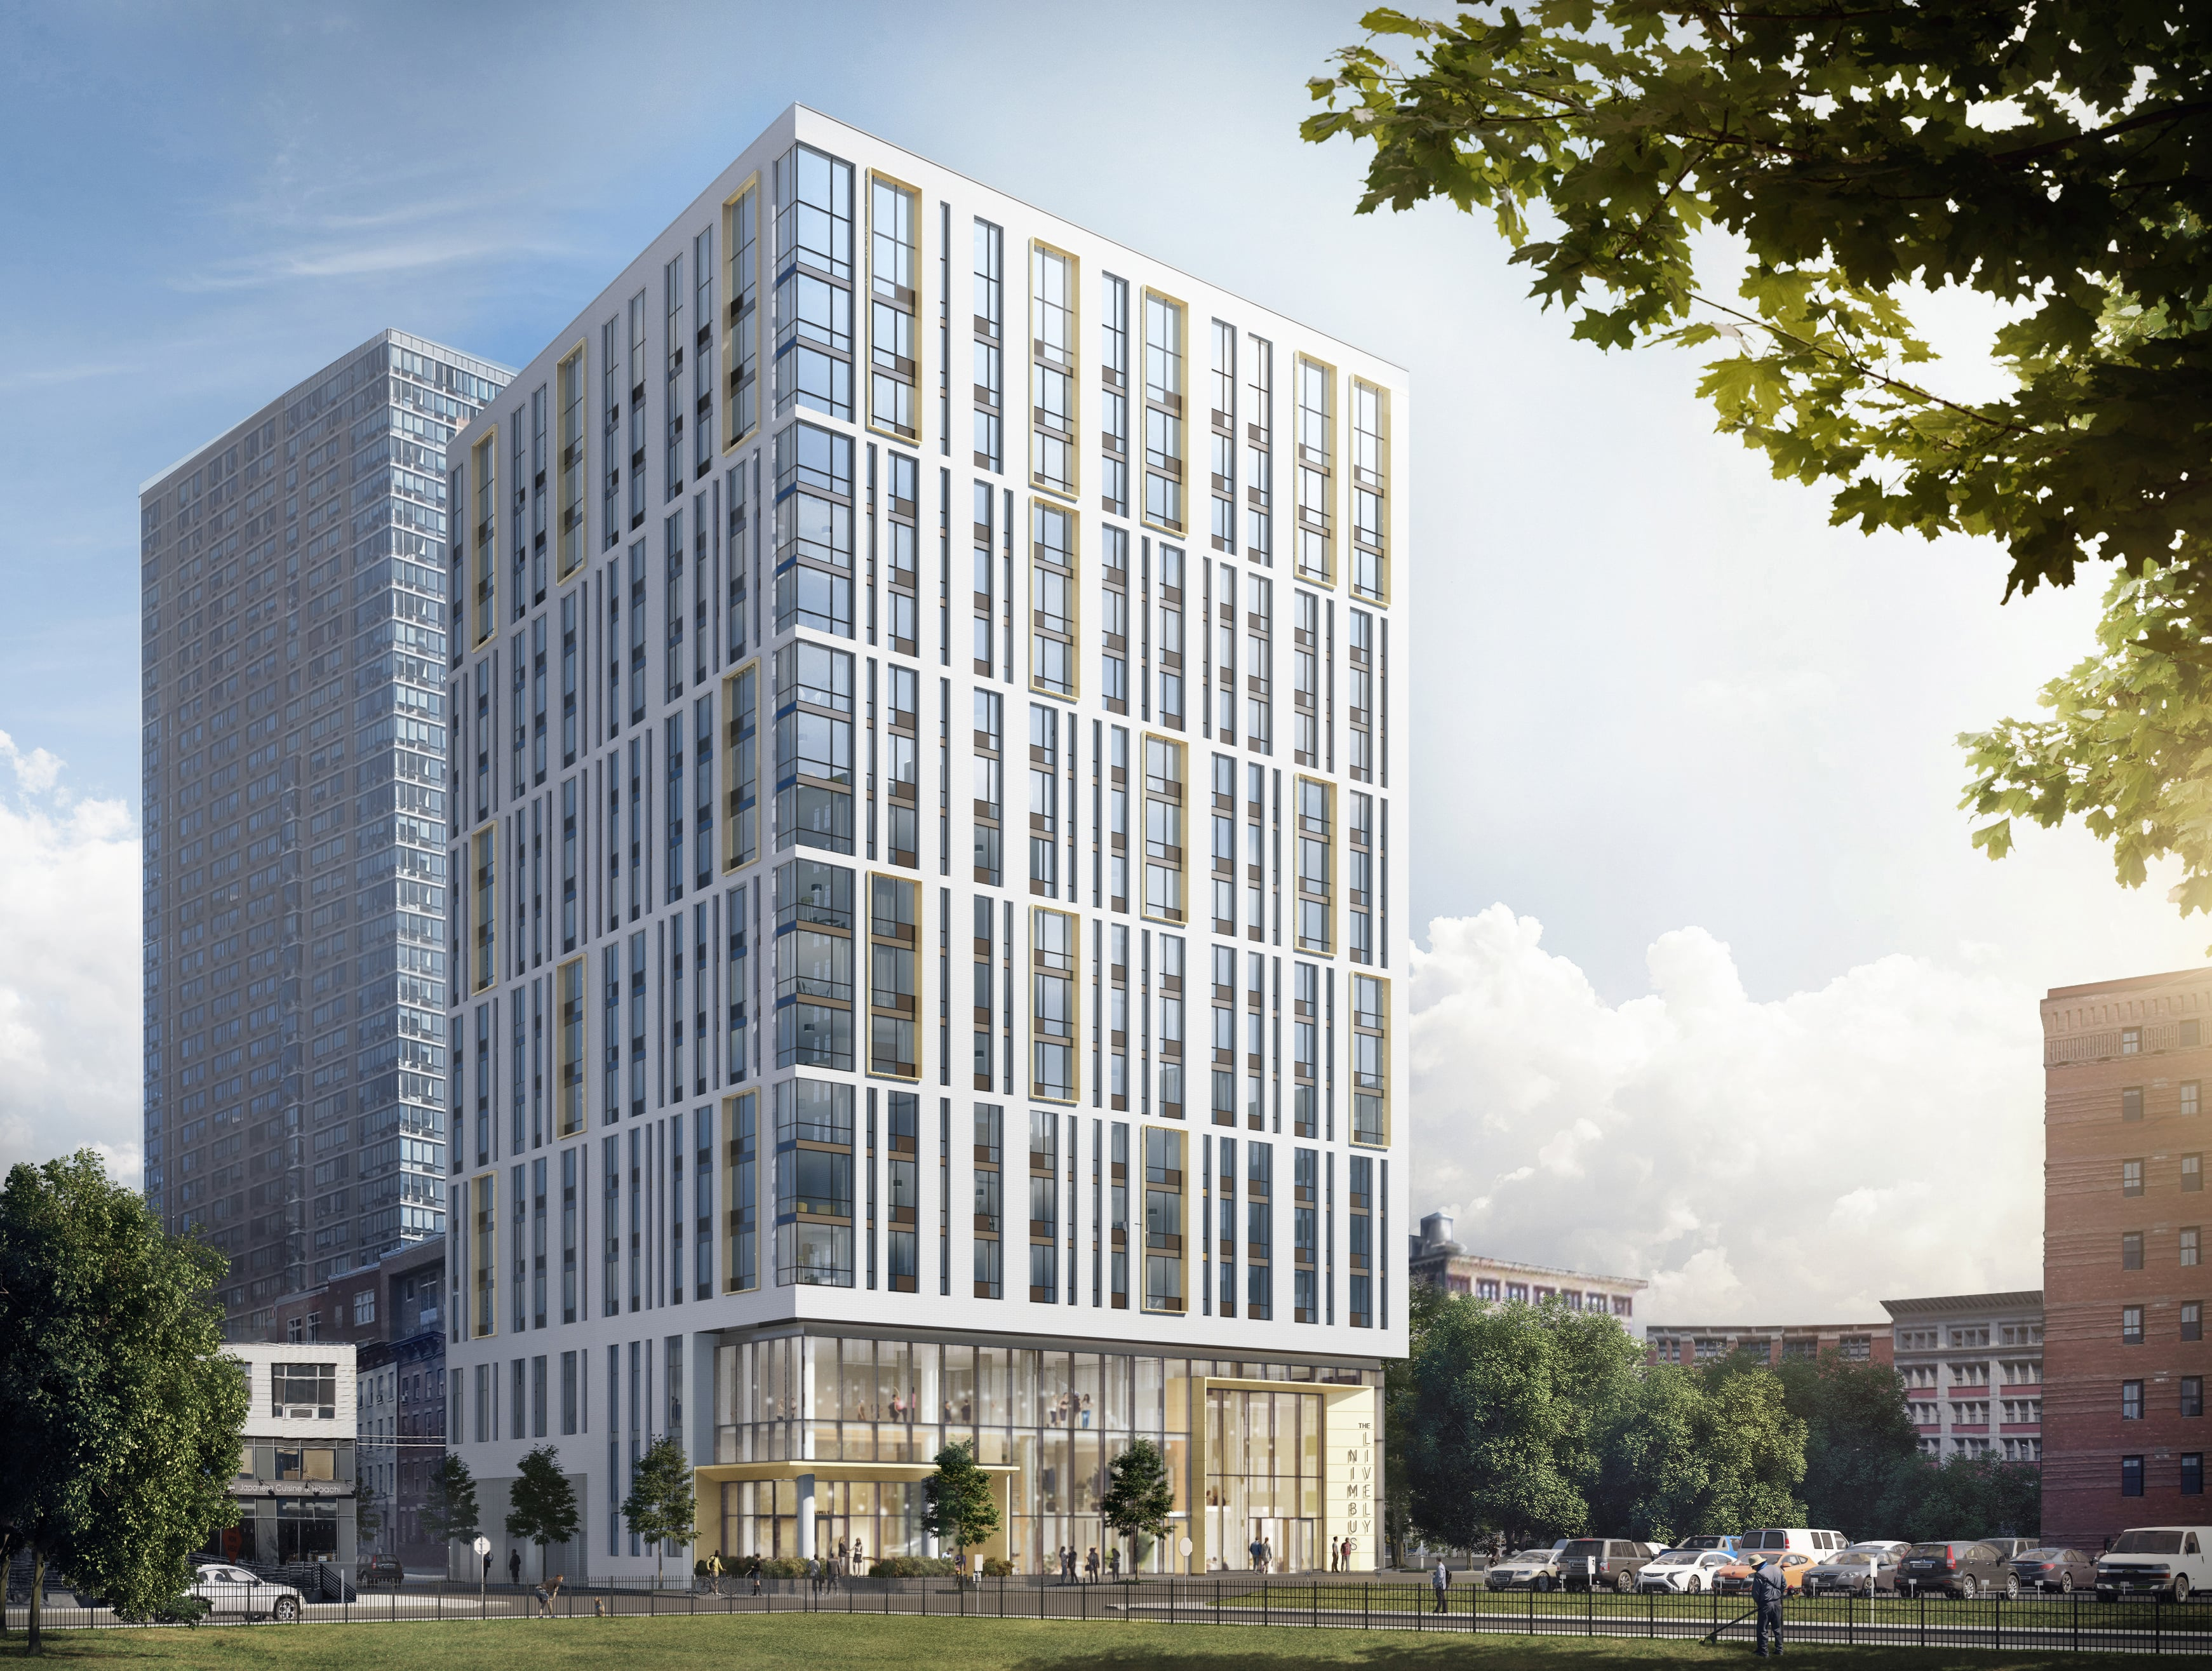 LMC Announces Kicks-Off Leasing at The Lively Boutique Apartment Community in Jersey City's Powerhouse Arts District